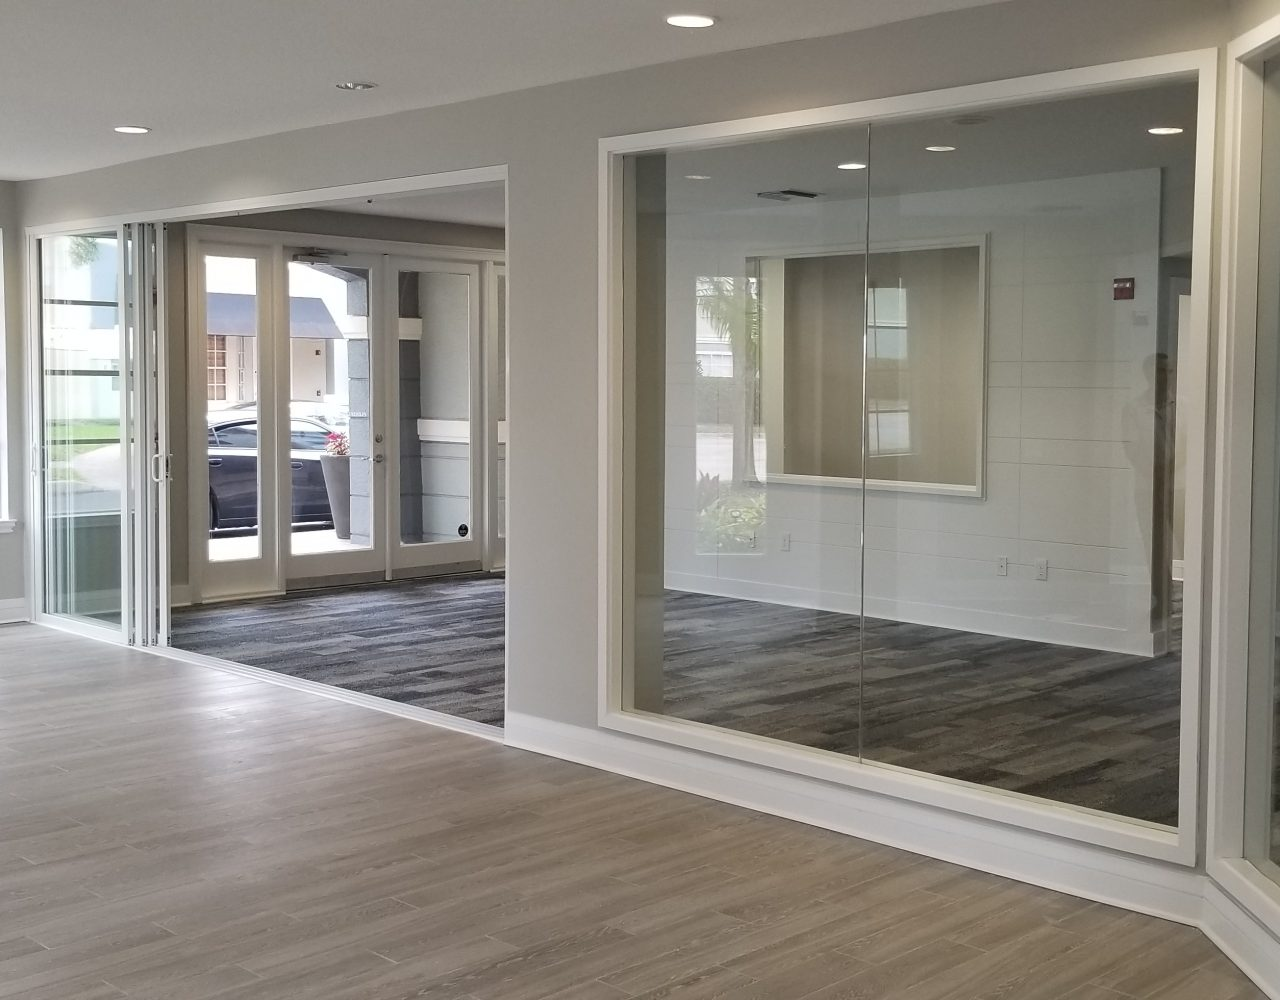 Arbors at Carrollwood Apartments - Wall Design and Mirrors